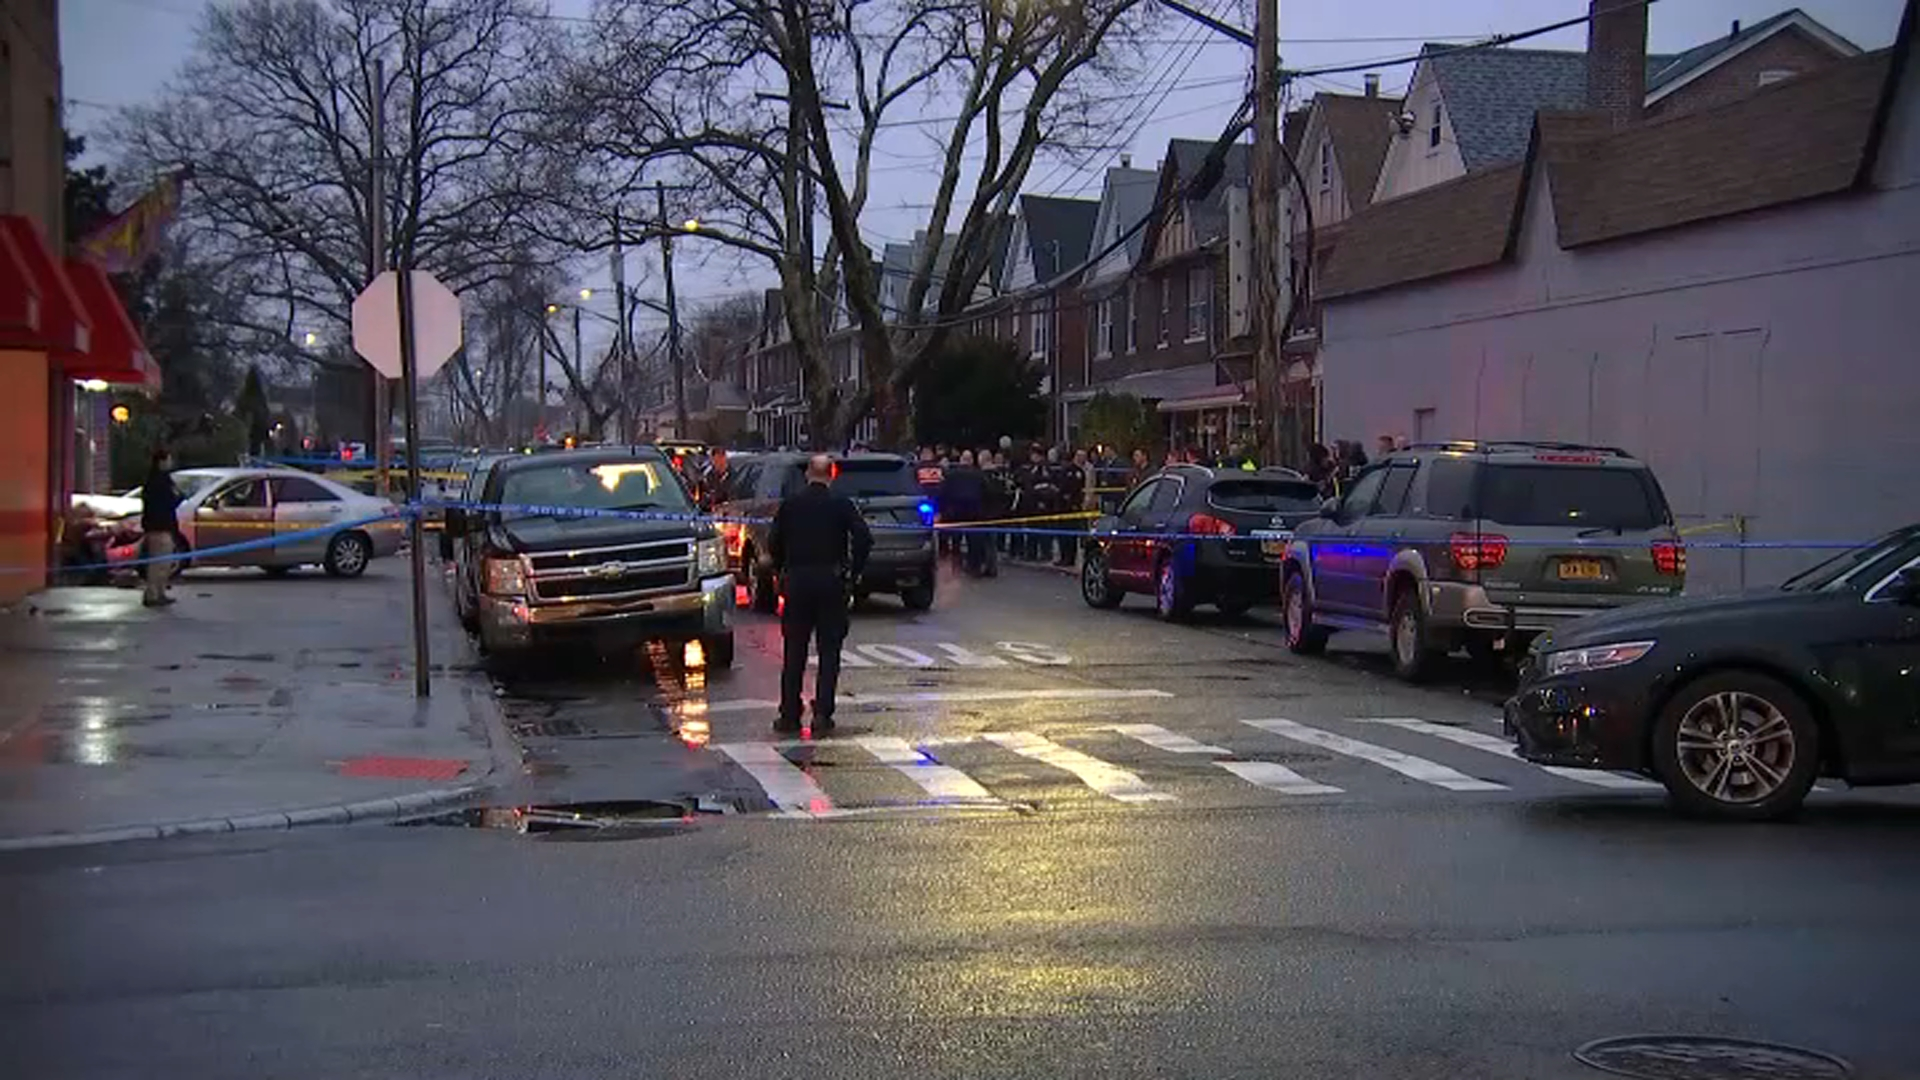 Nassau County Police Involved in Shooting During Queens Investigation